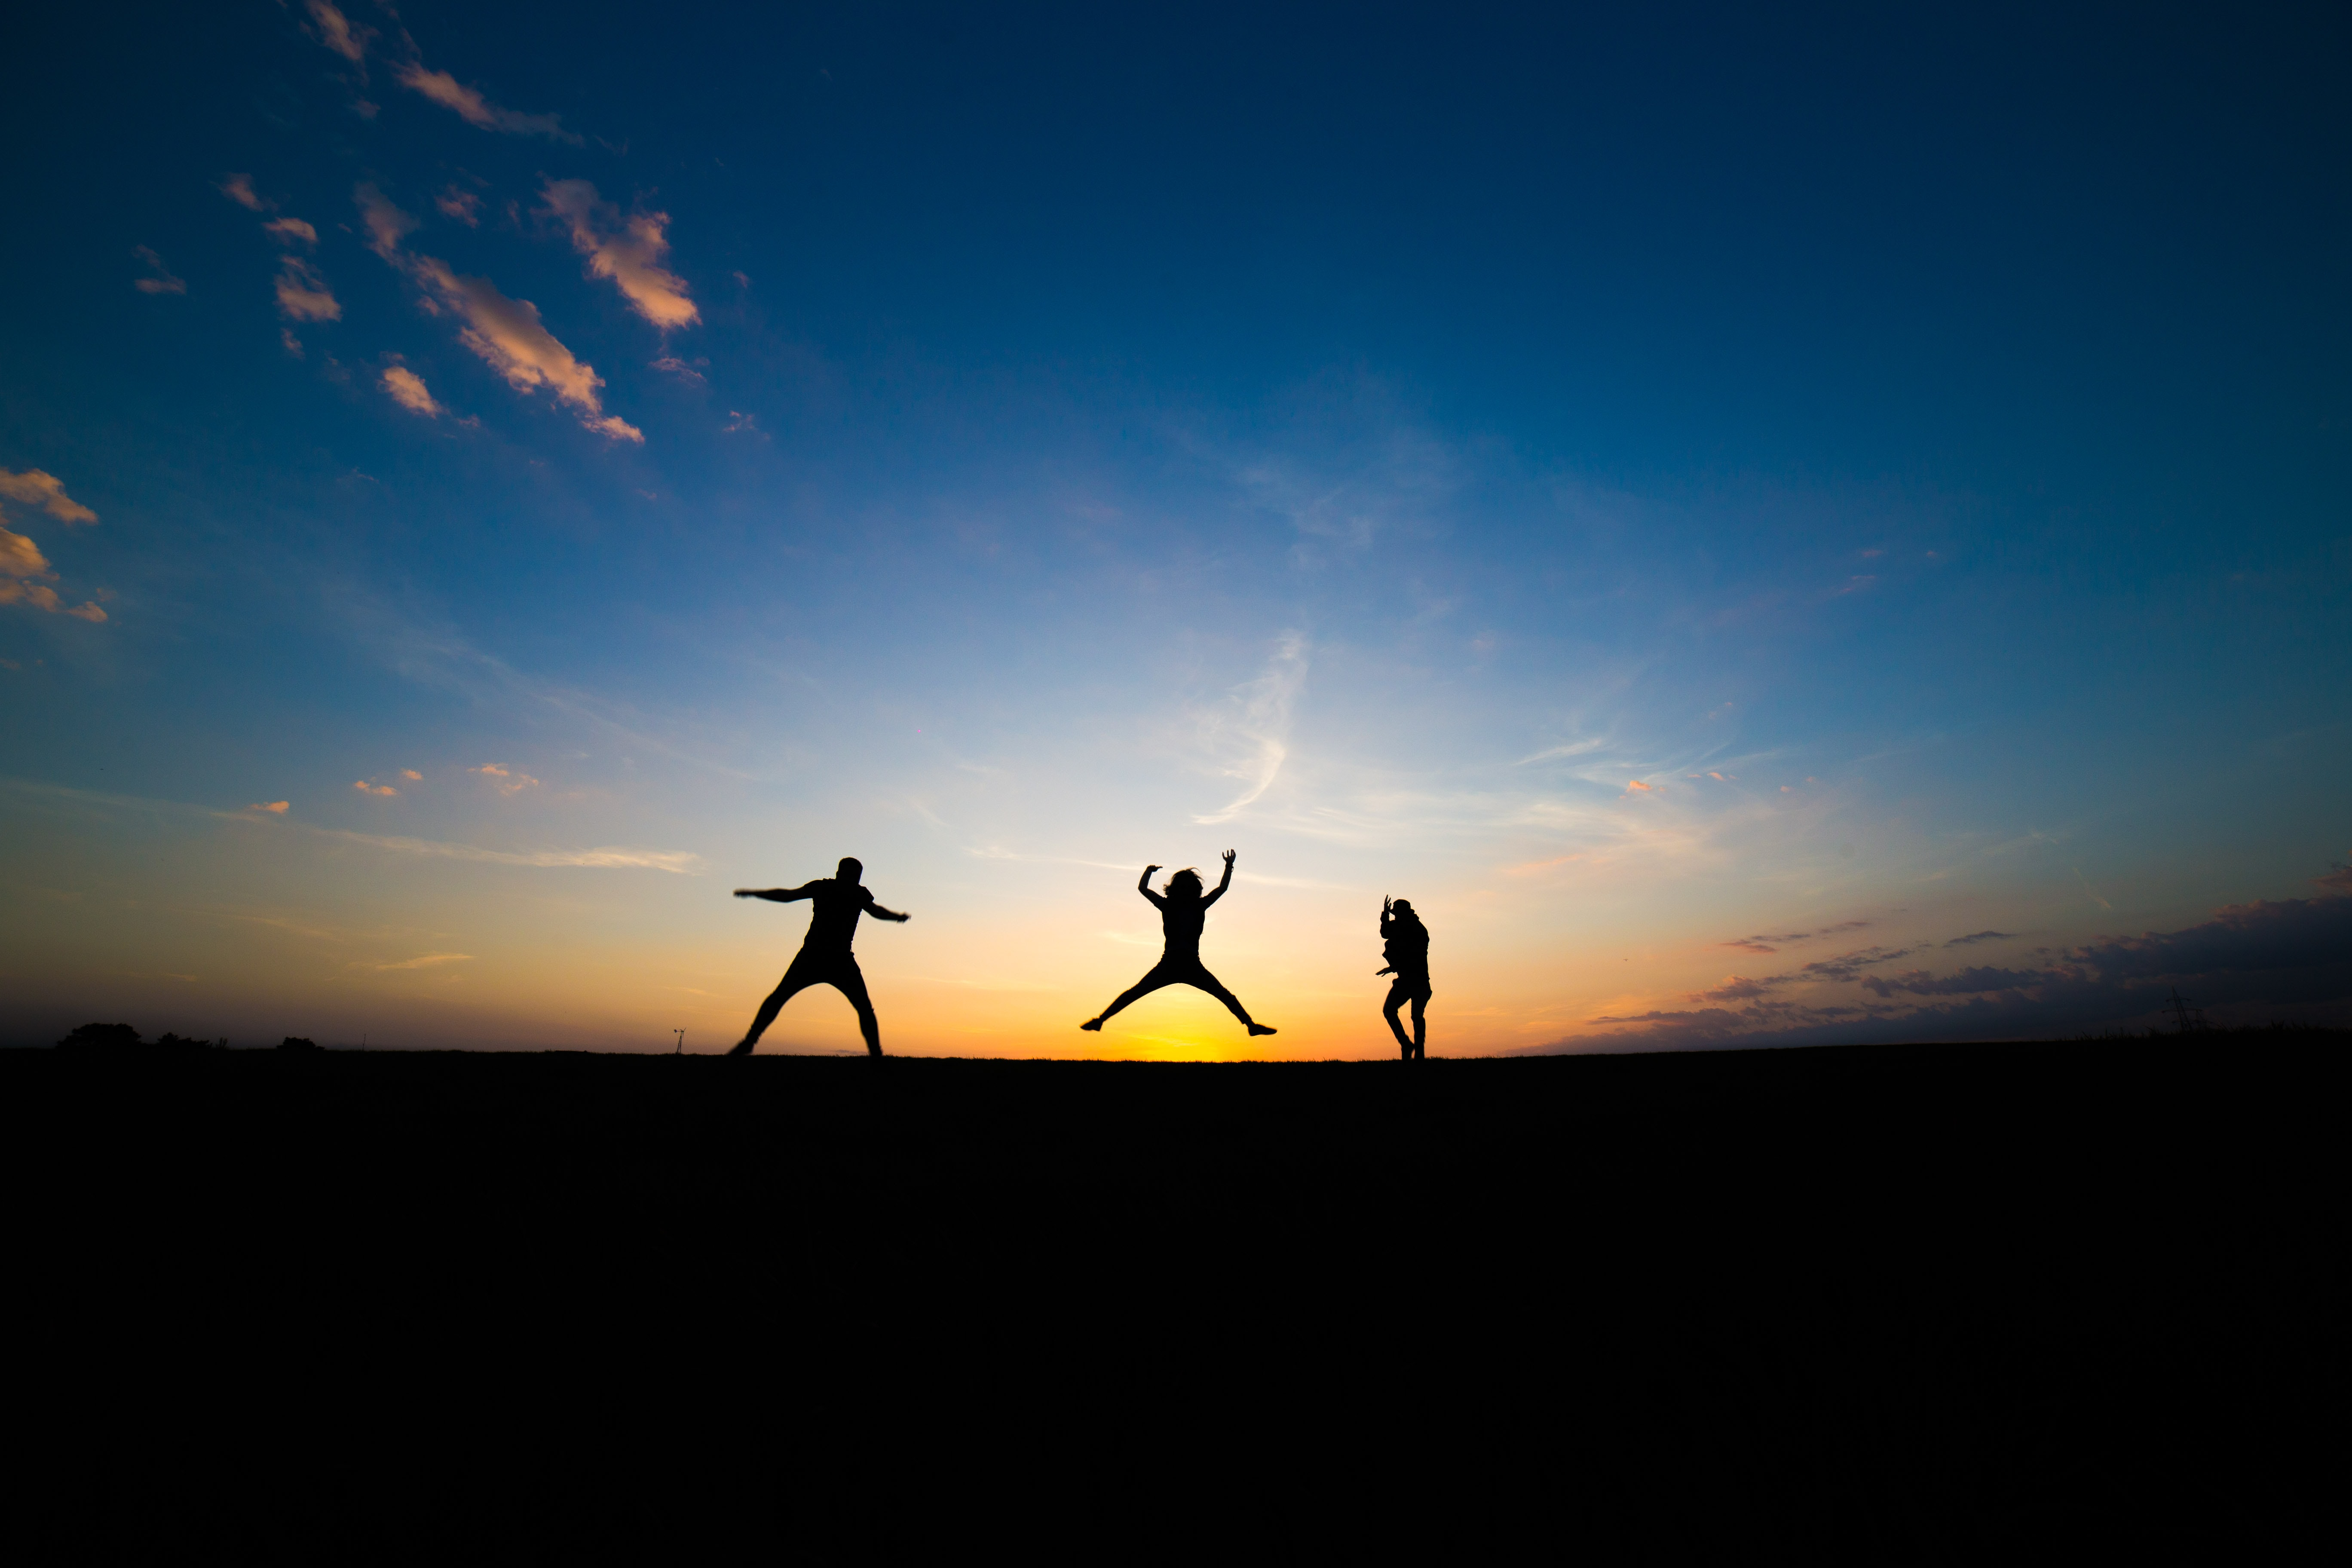 silhouette of three person jumping